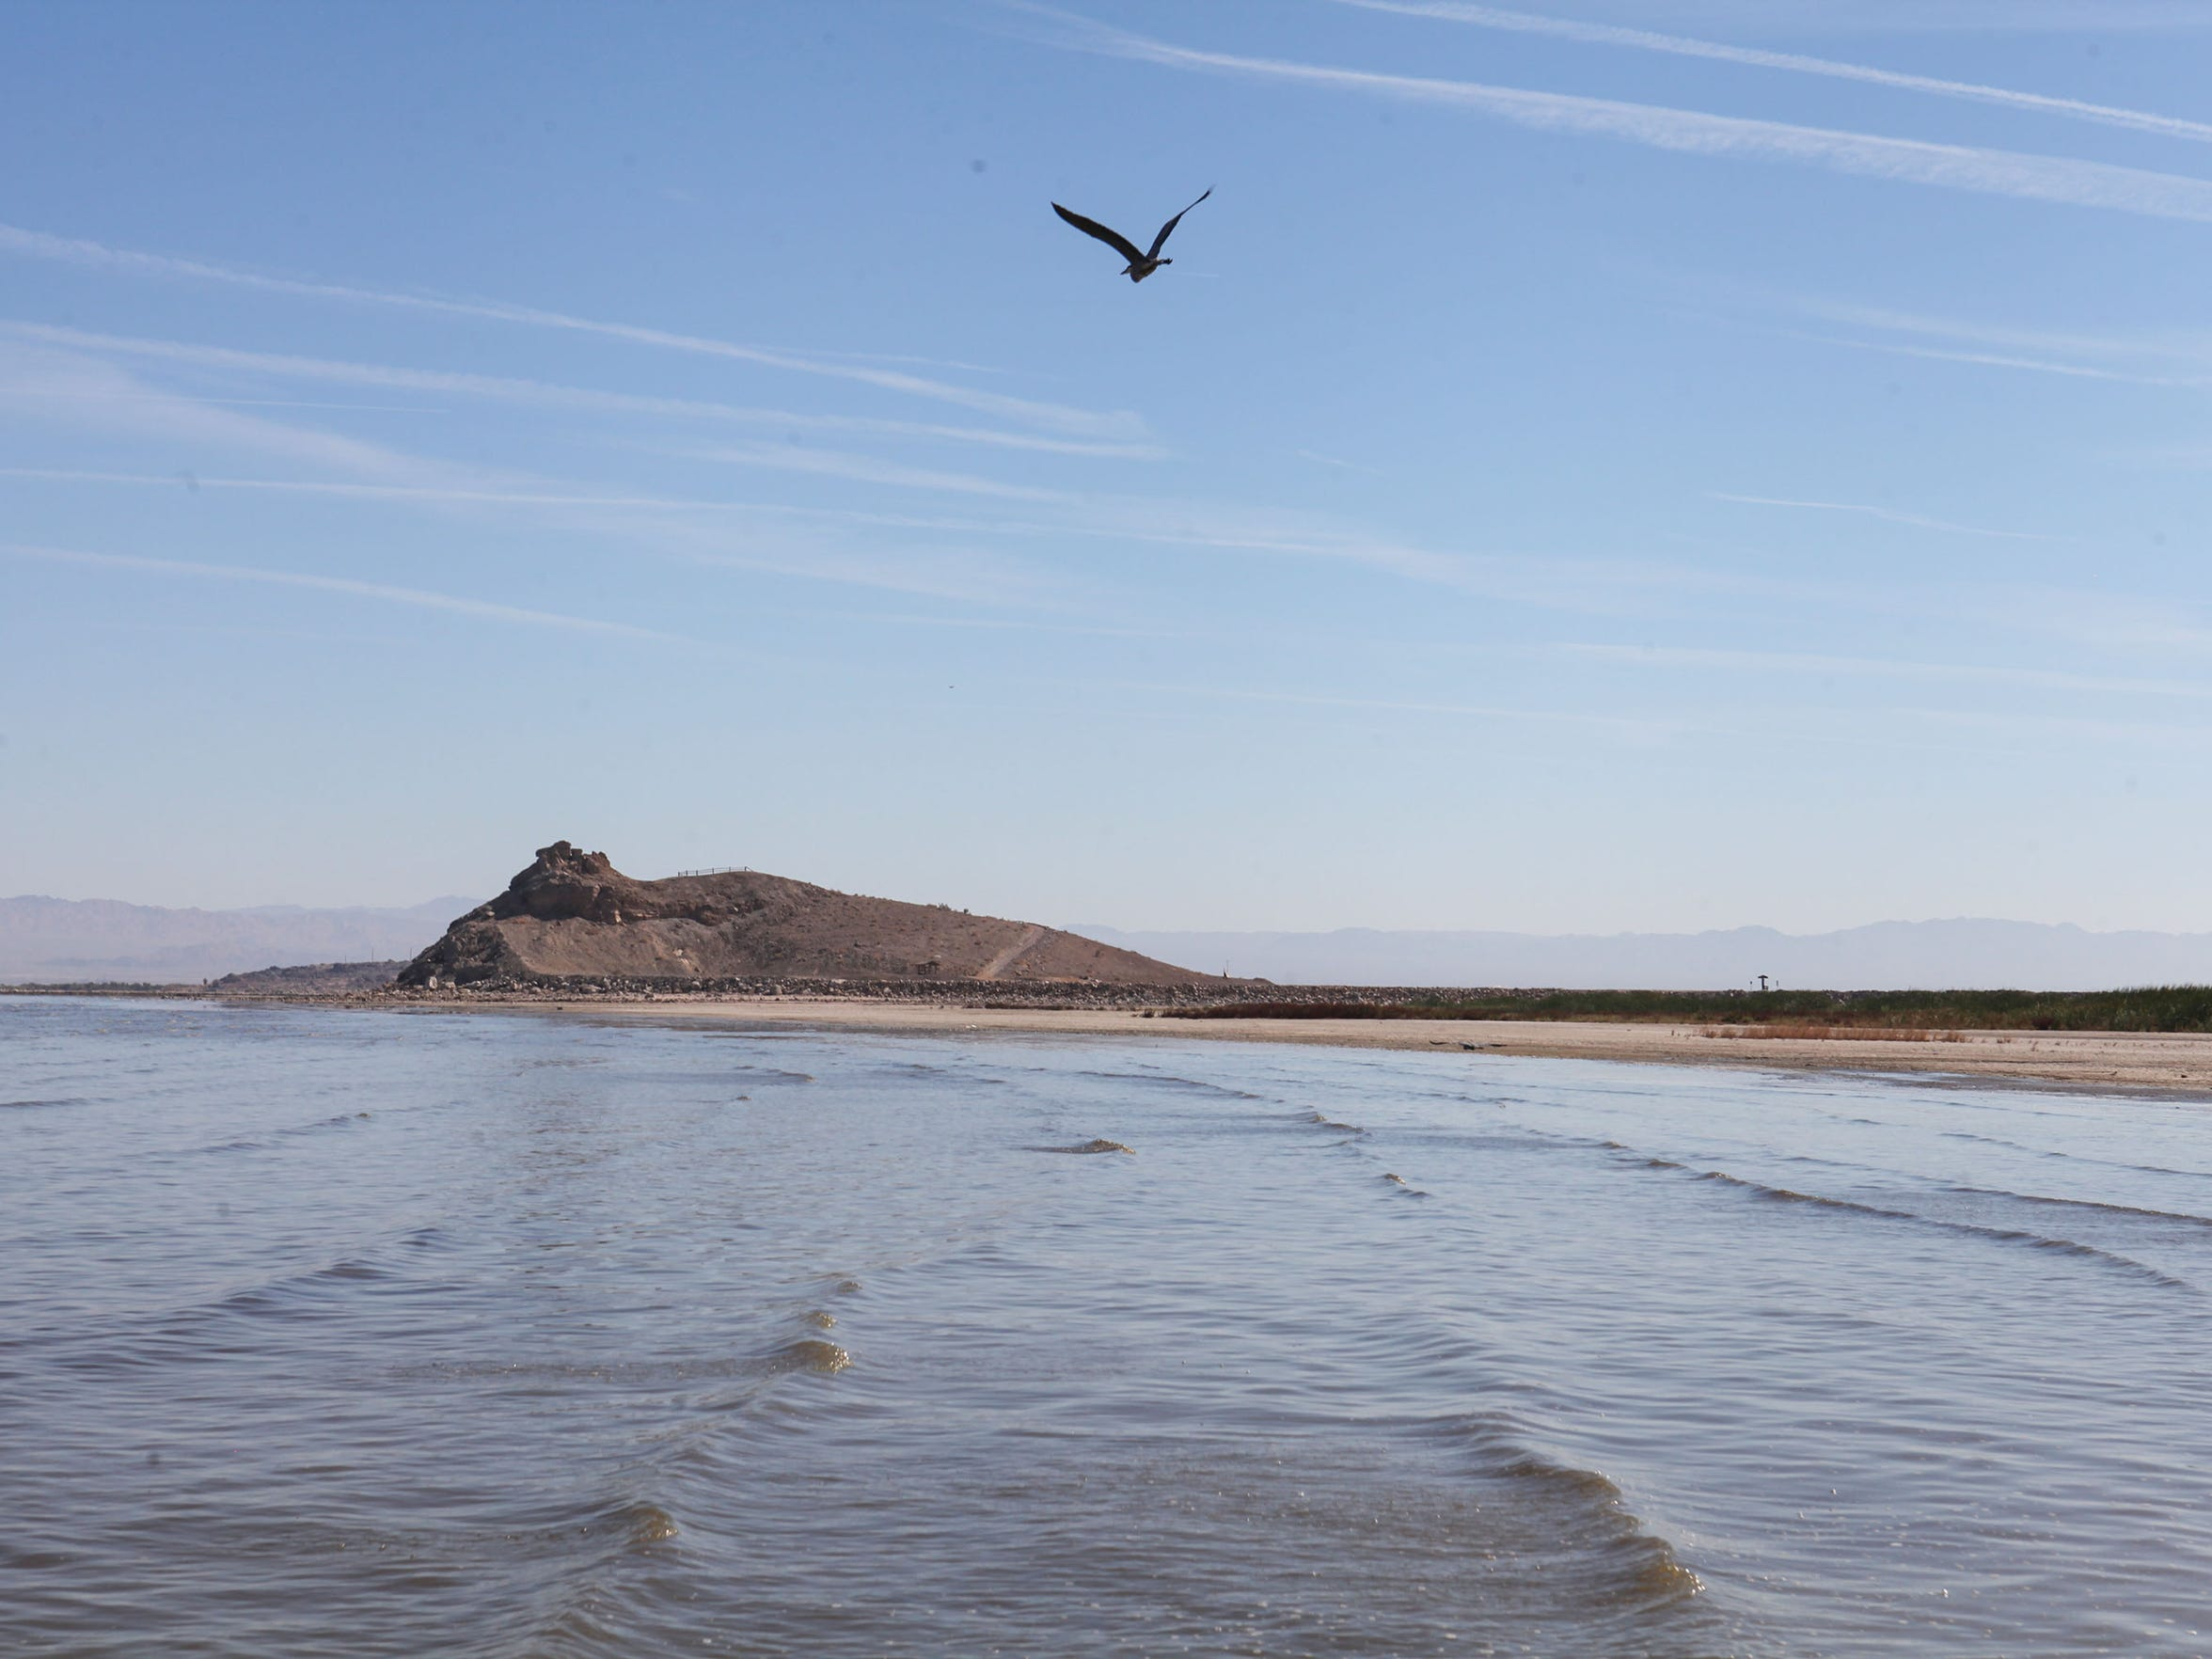 A bird flies along the retreating shoreline of the Salton Sea.